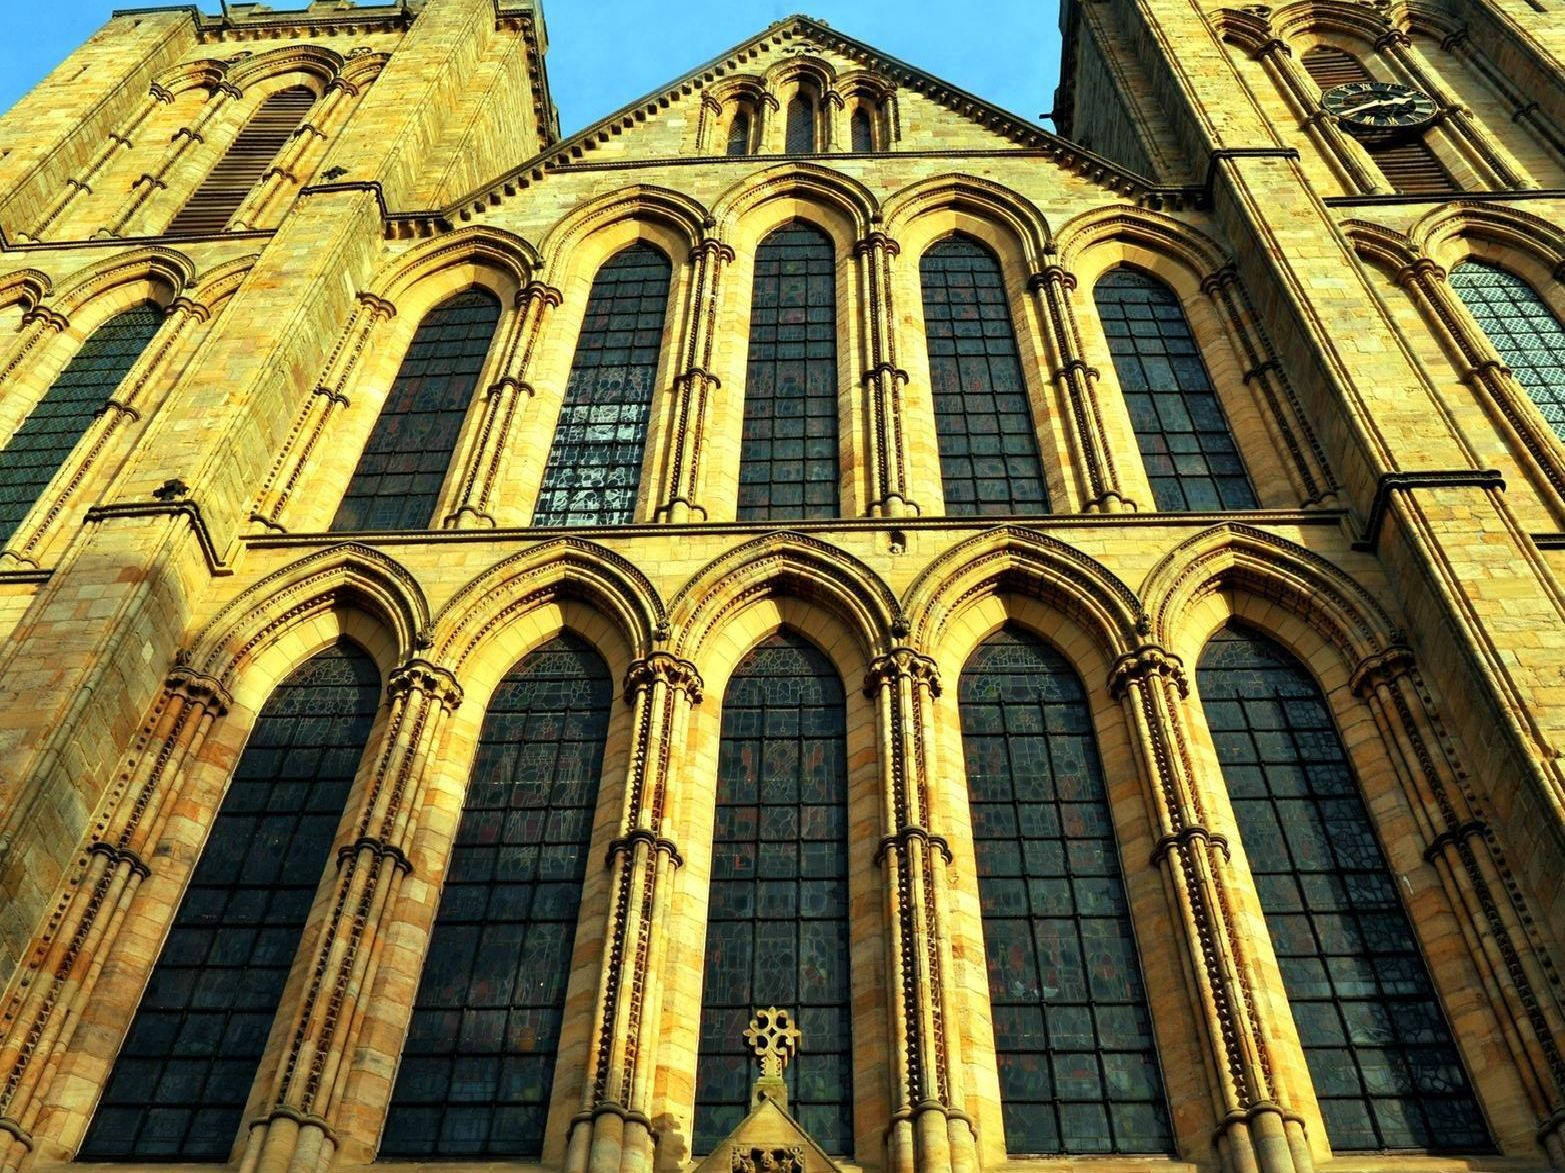 We are so lucky to have Ripon Cathedral - here are 10 quirky facts about the stunning historical building.